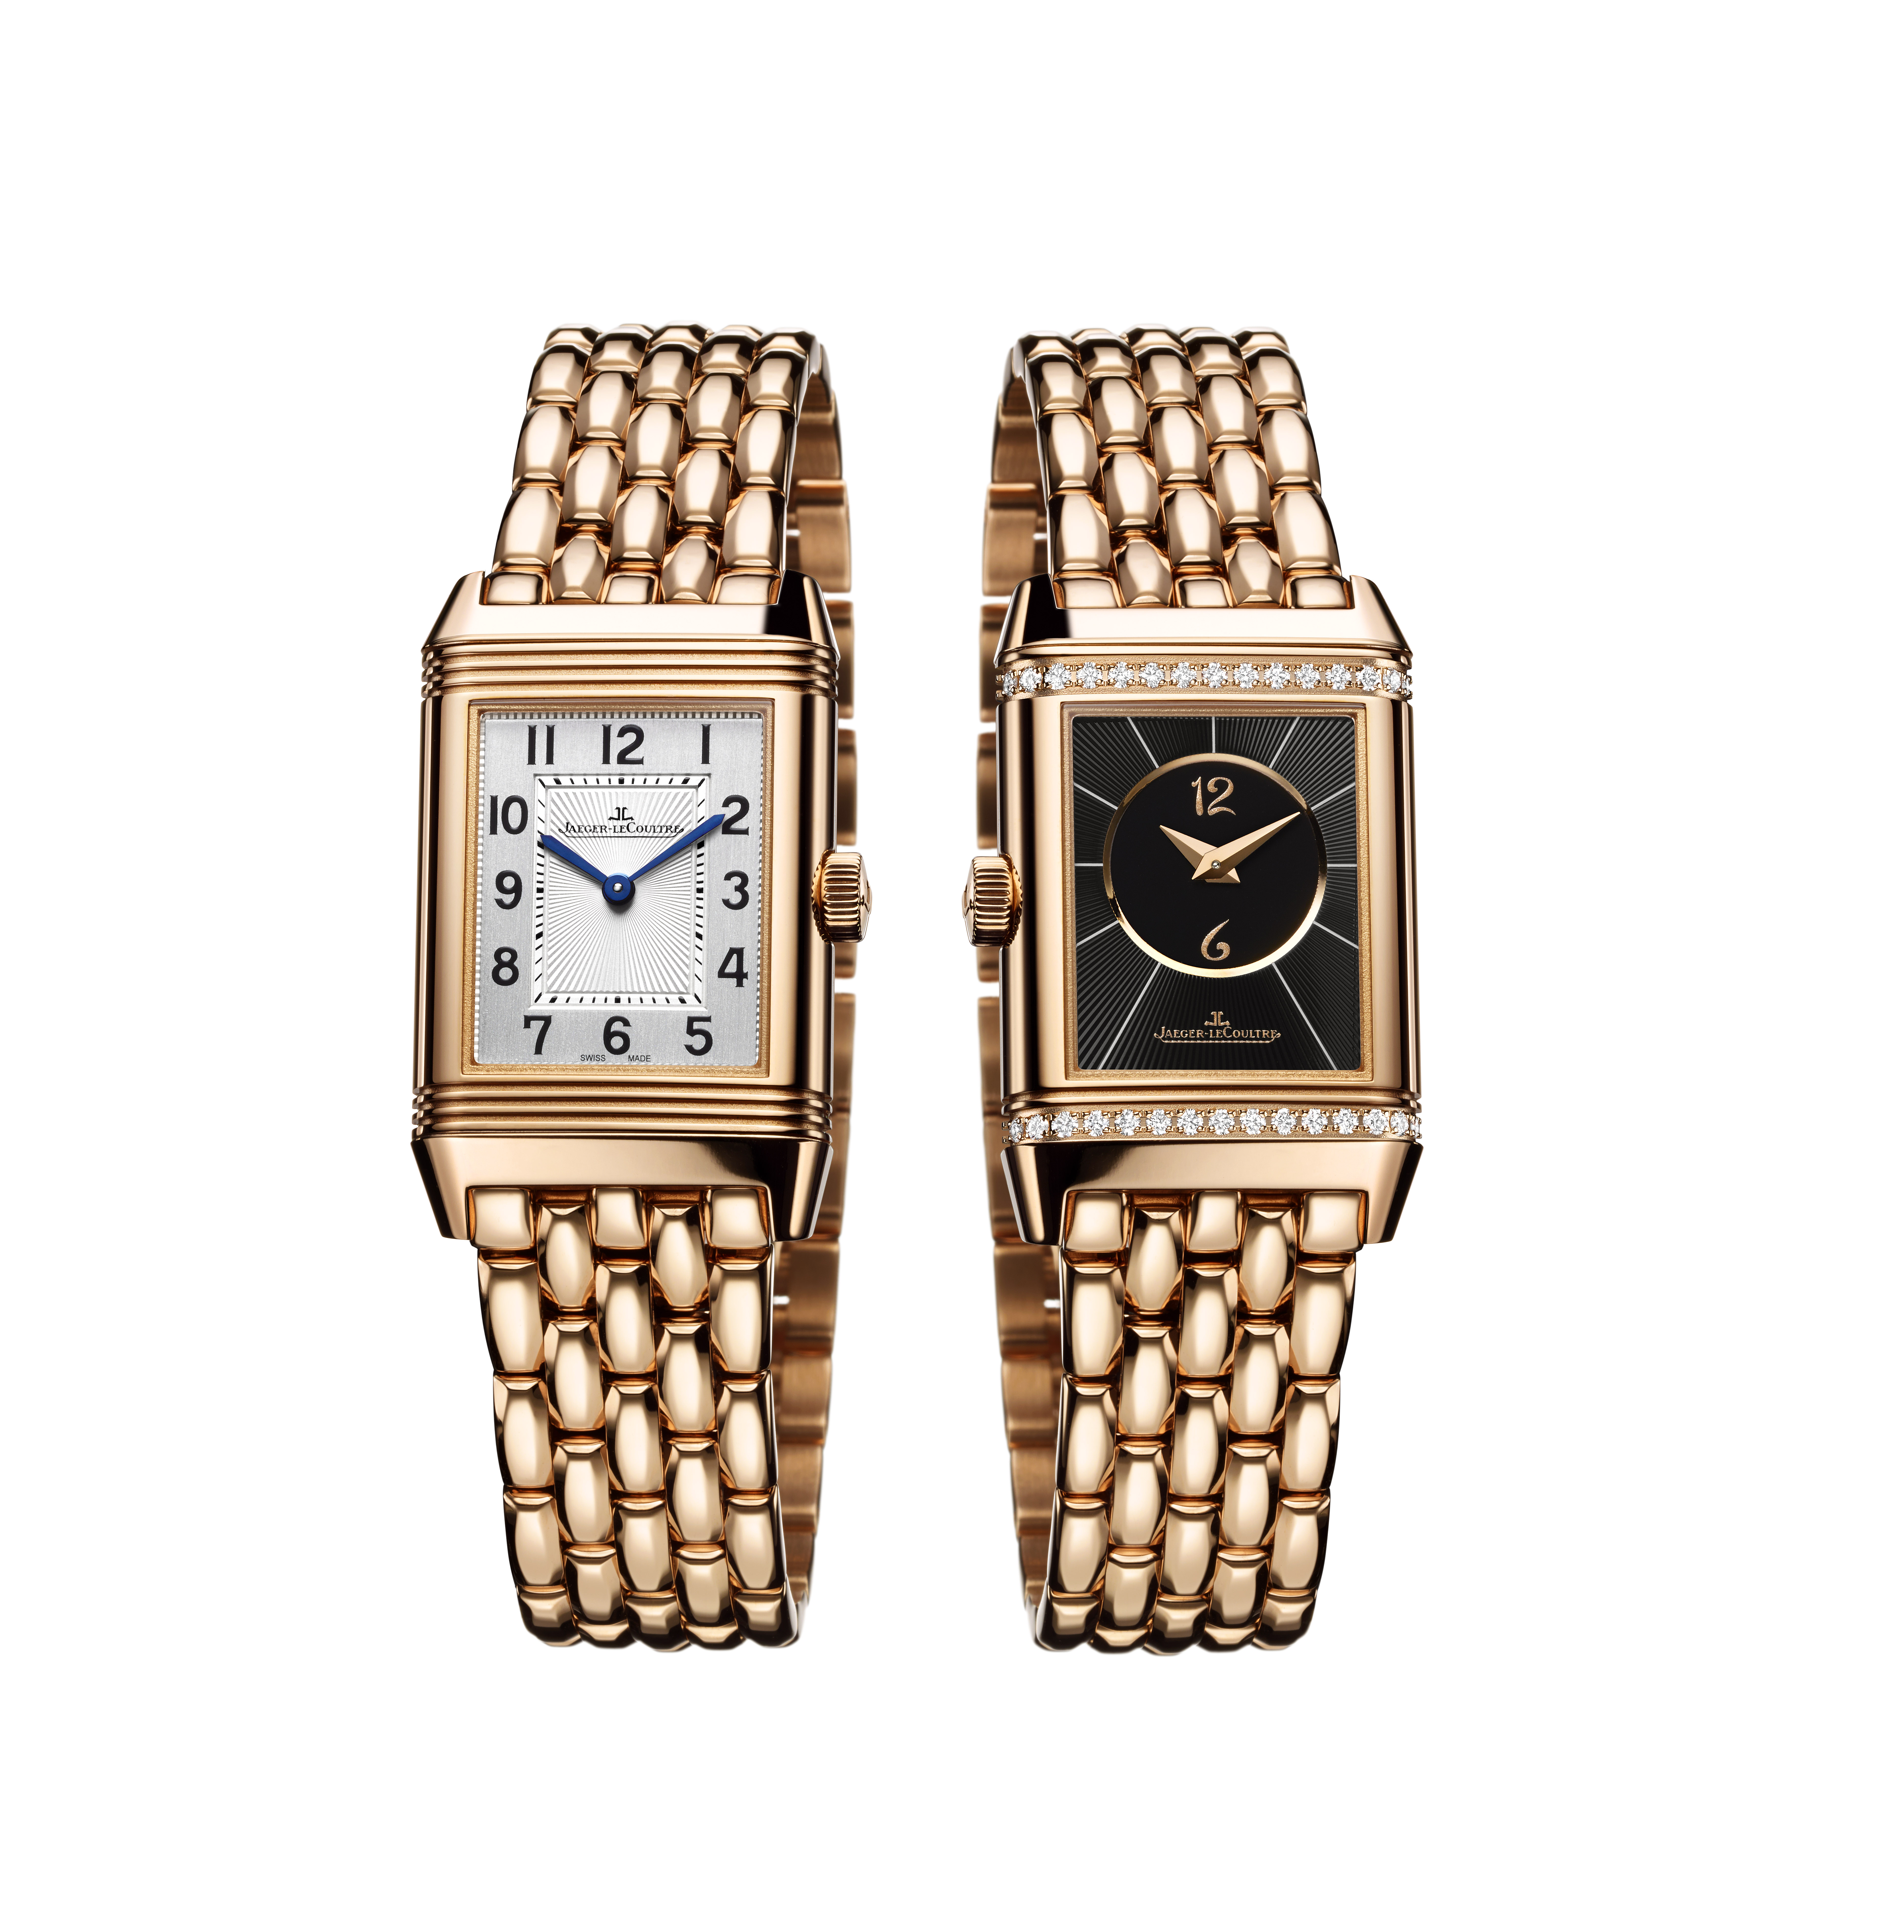 (3) Jaeger-LeCoultre Reverso Classic Small Duetto © Jaeger-LeCoultre